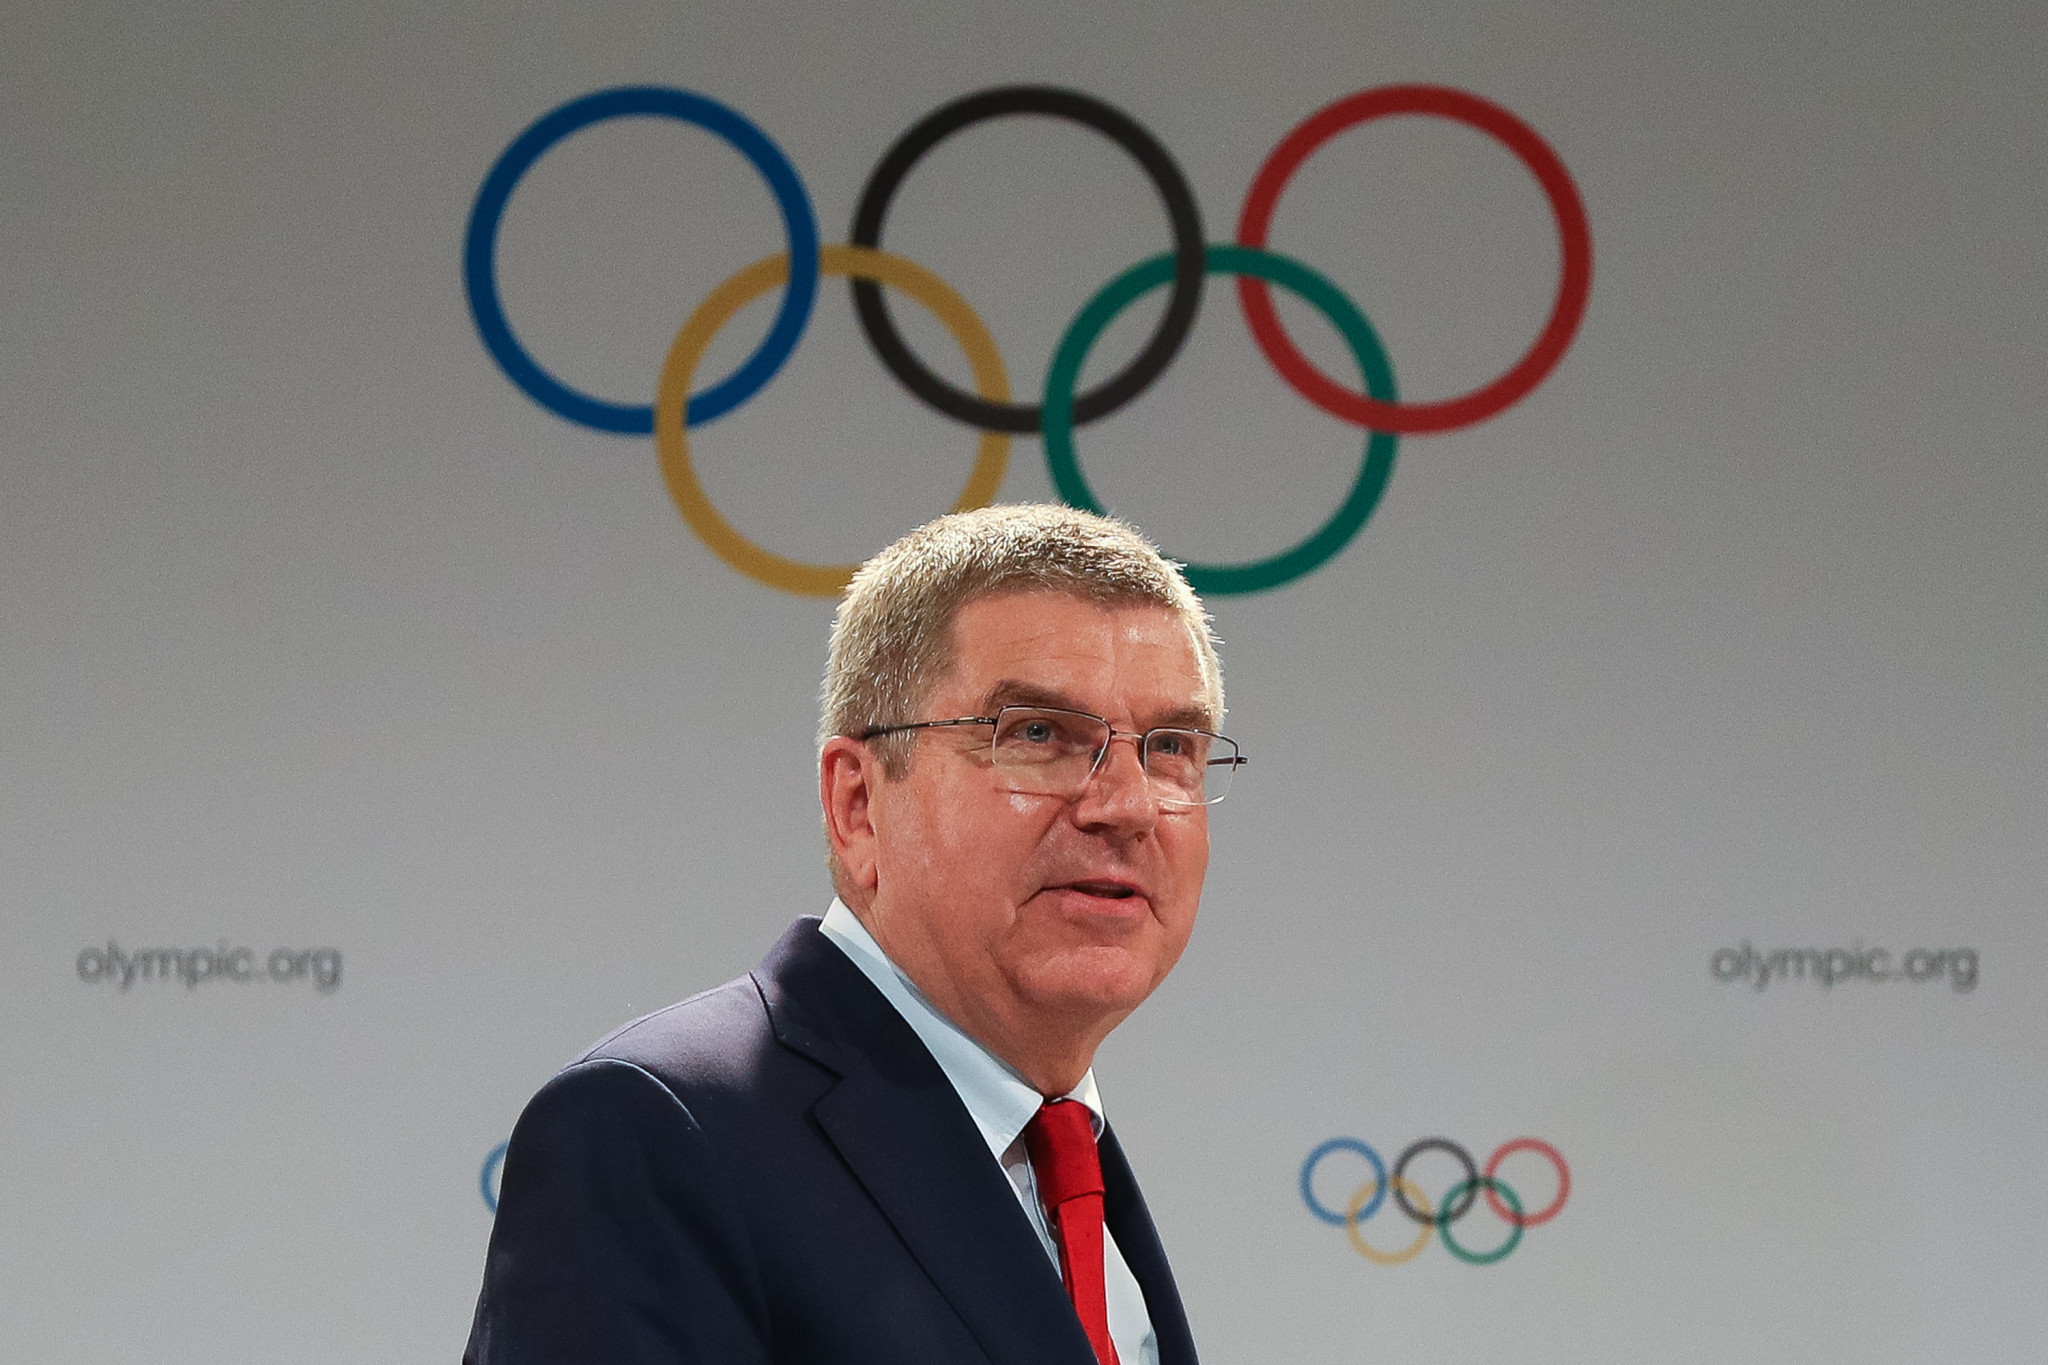 IOC President Thomas Bach has appealed to owners of NHL teams to allow athletes to compete at Pyeongchang 2018 ©Getty Images